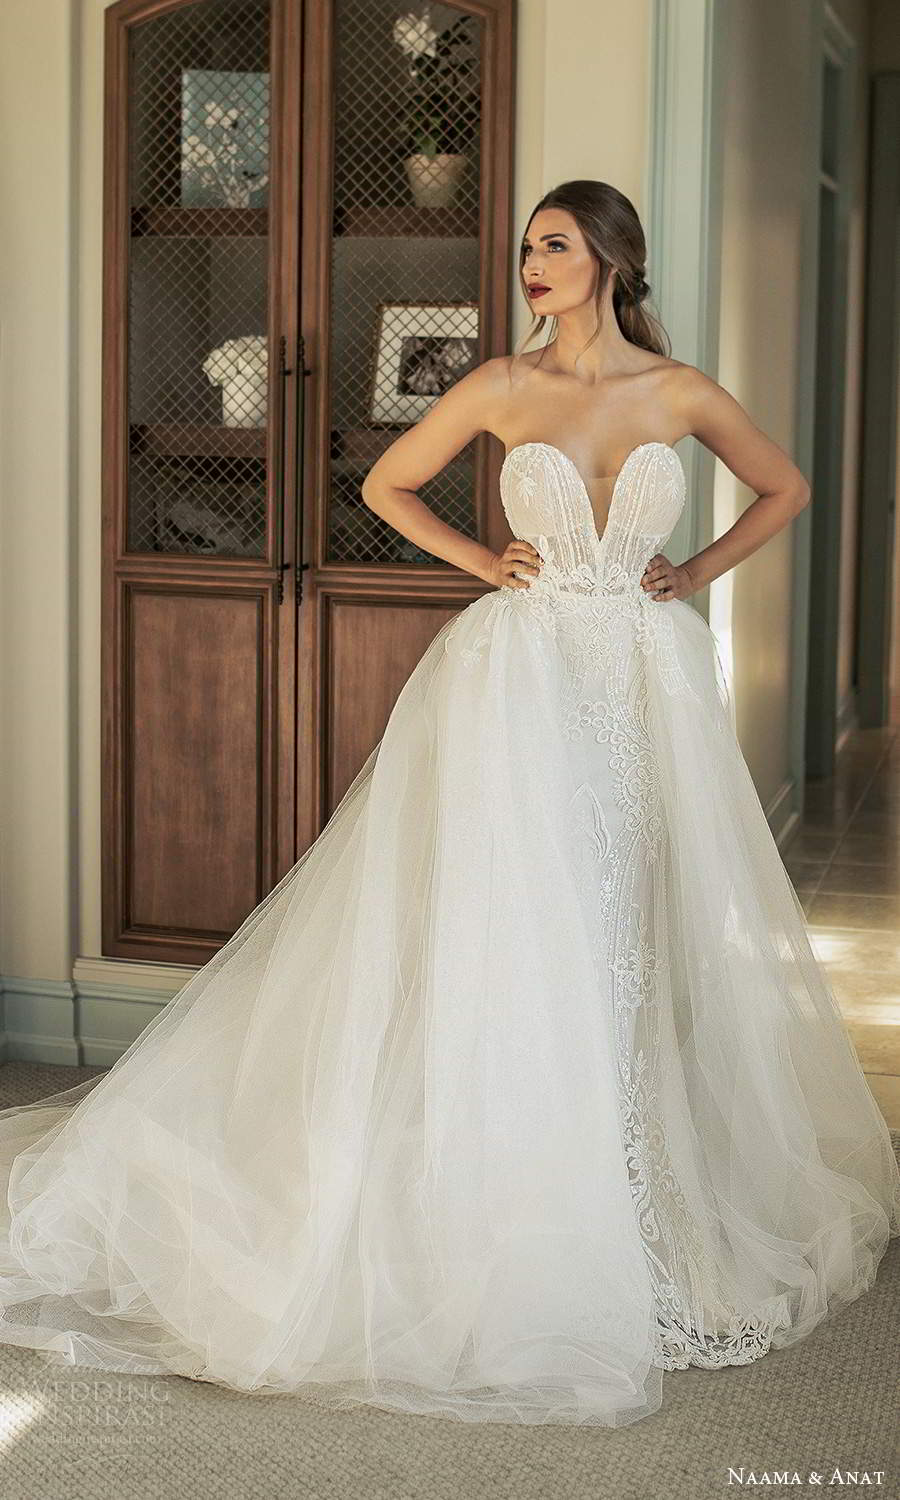 naama and anat fall 2021 bridalstrapless plunging sweetheart neckline fully embellished fit flare mermaid wedding dress chapel train ball gown overskirt (5) mv